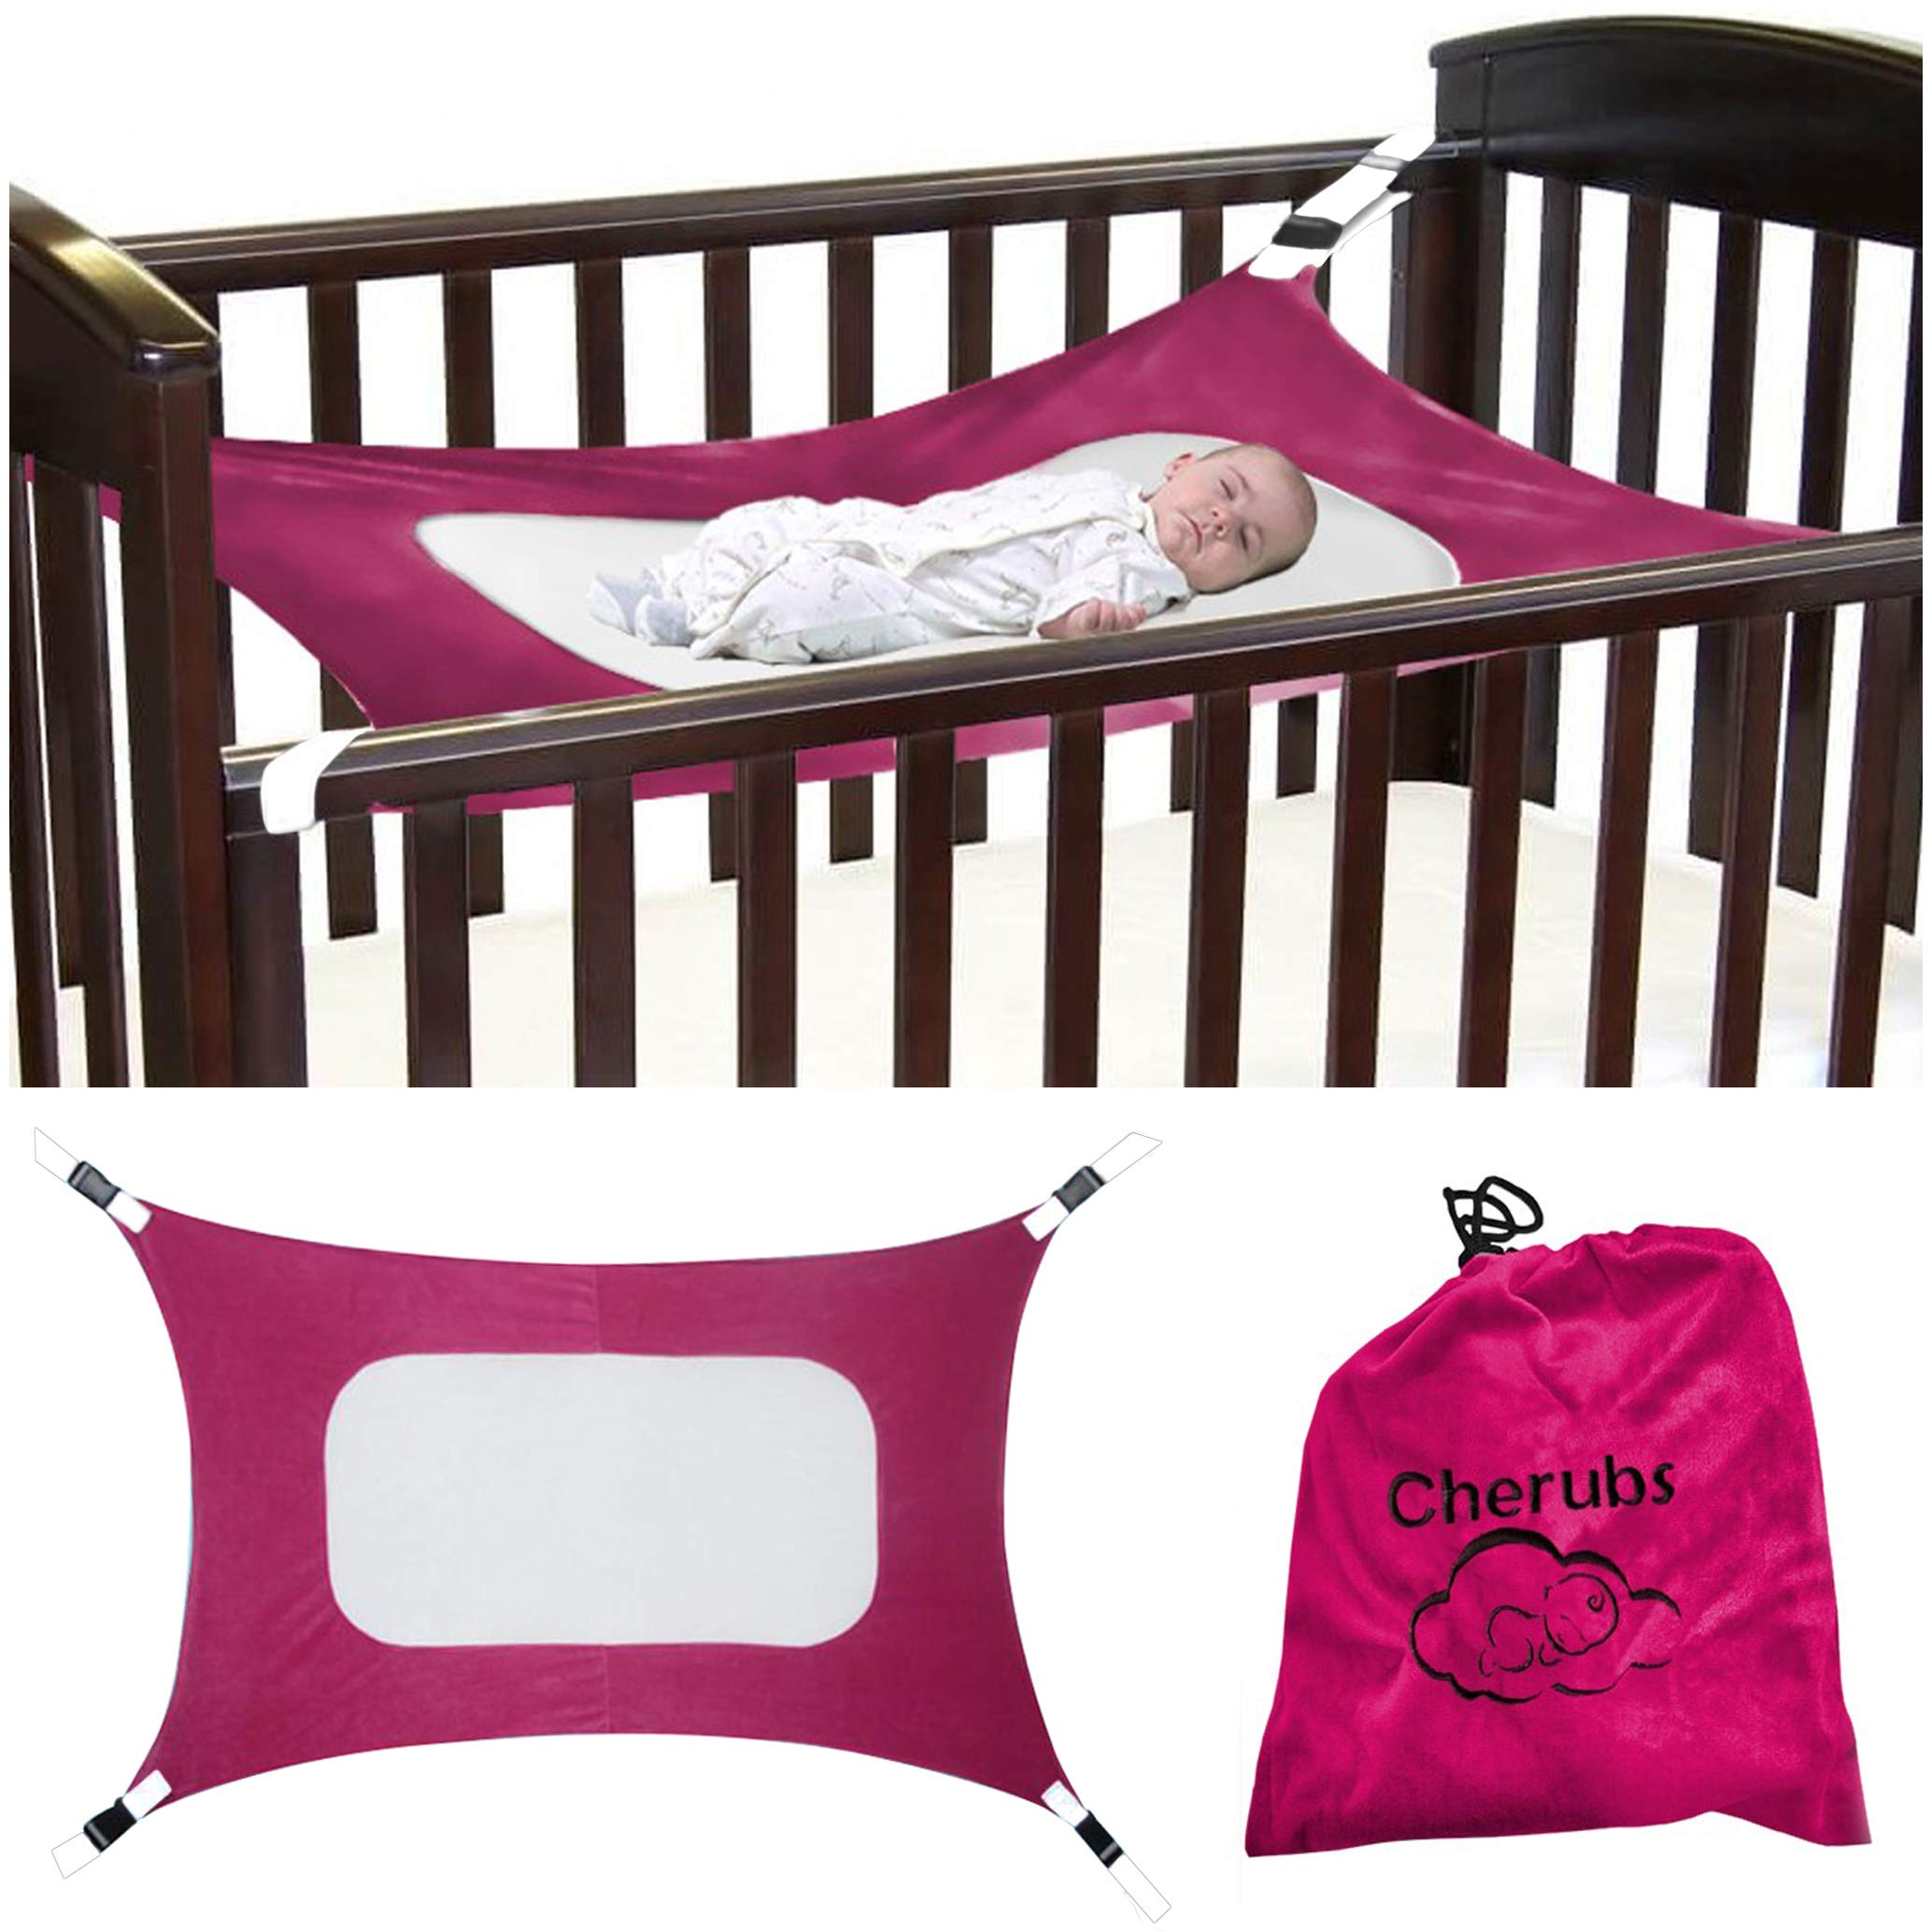 Baby Hammock for Crib, Soft and Comfortable Material with Strong Adjustable Straps, Mimics The Womb, Upgraded Safety Measures, Newborn Hammock by Cherubs (Pink)